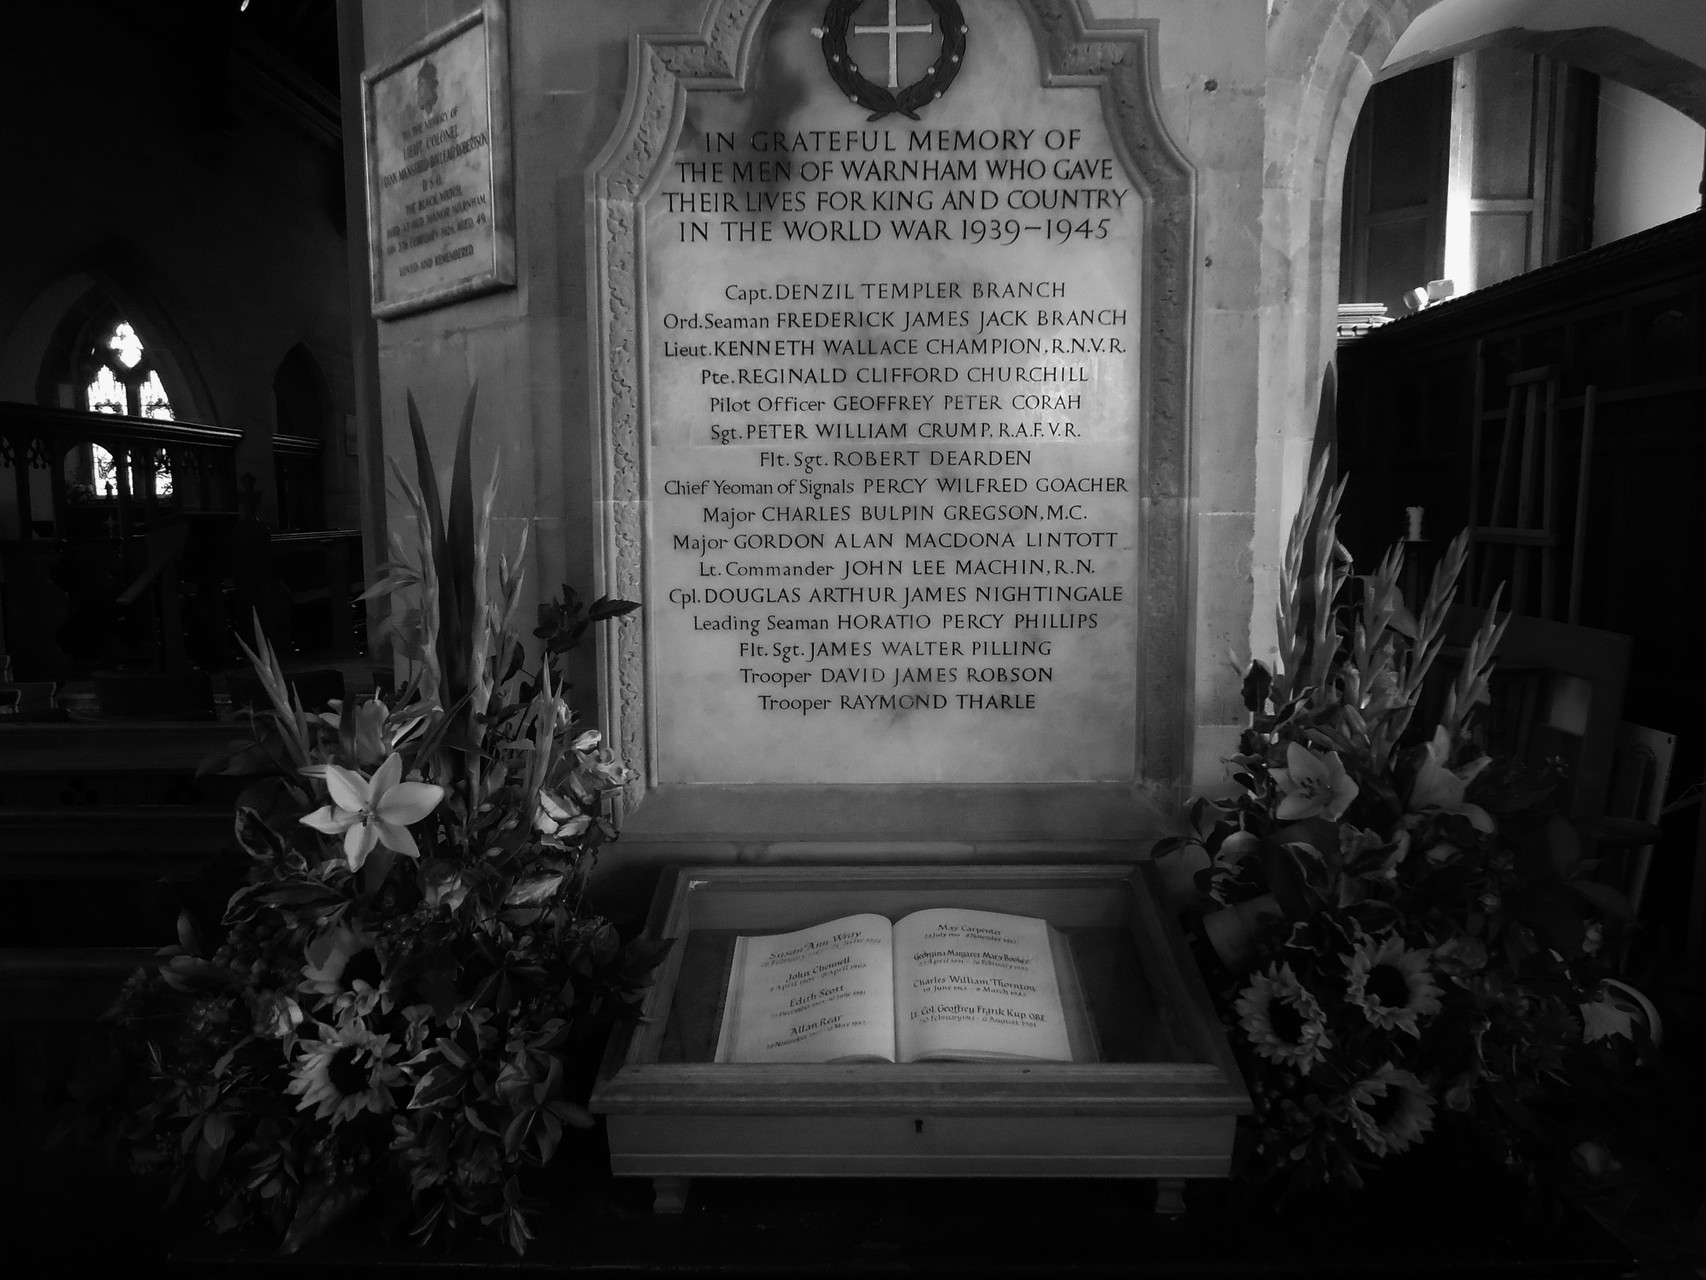 The Book of Remembrance and WWII Memorial